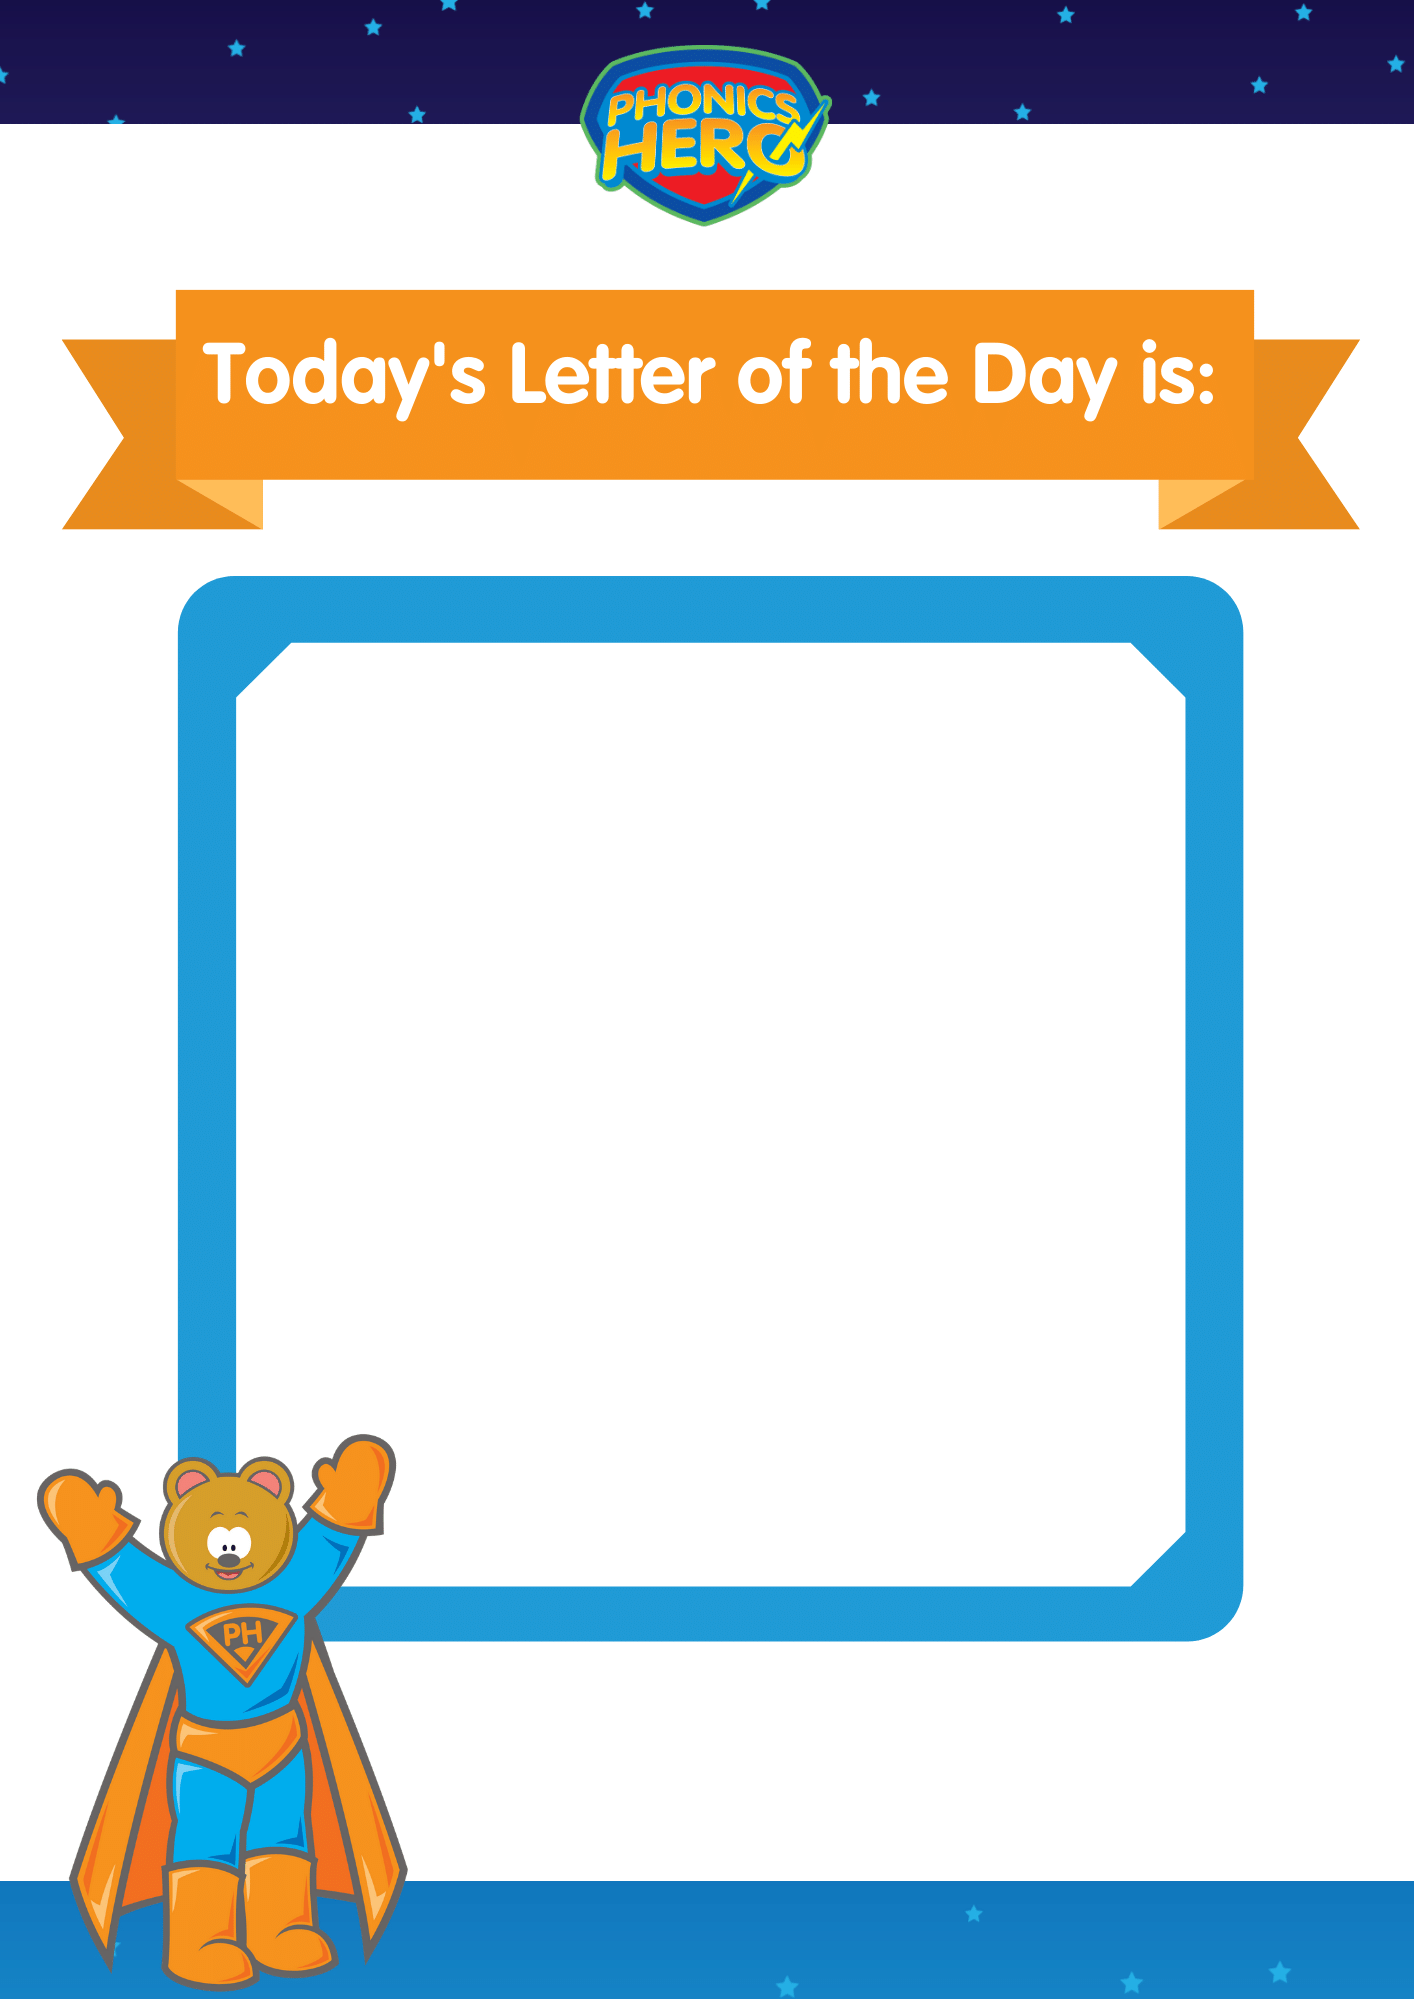 copy-of-letter-of-the-day-poster